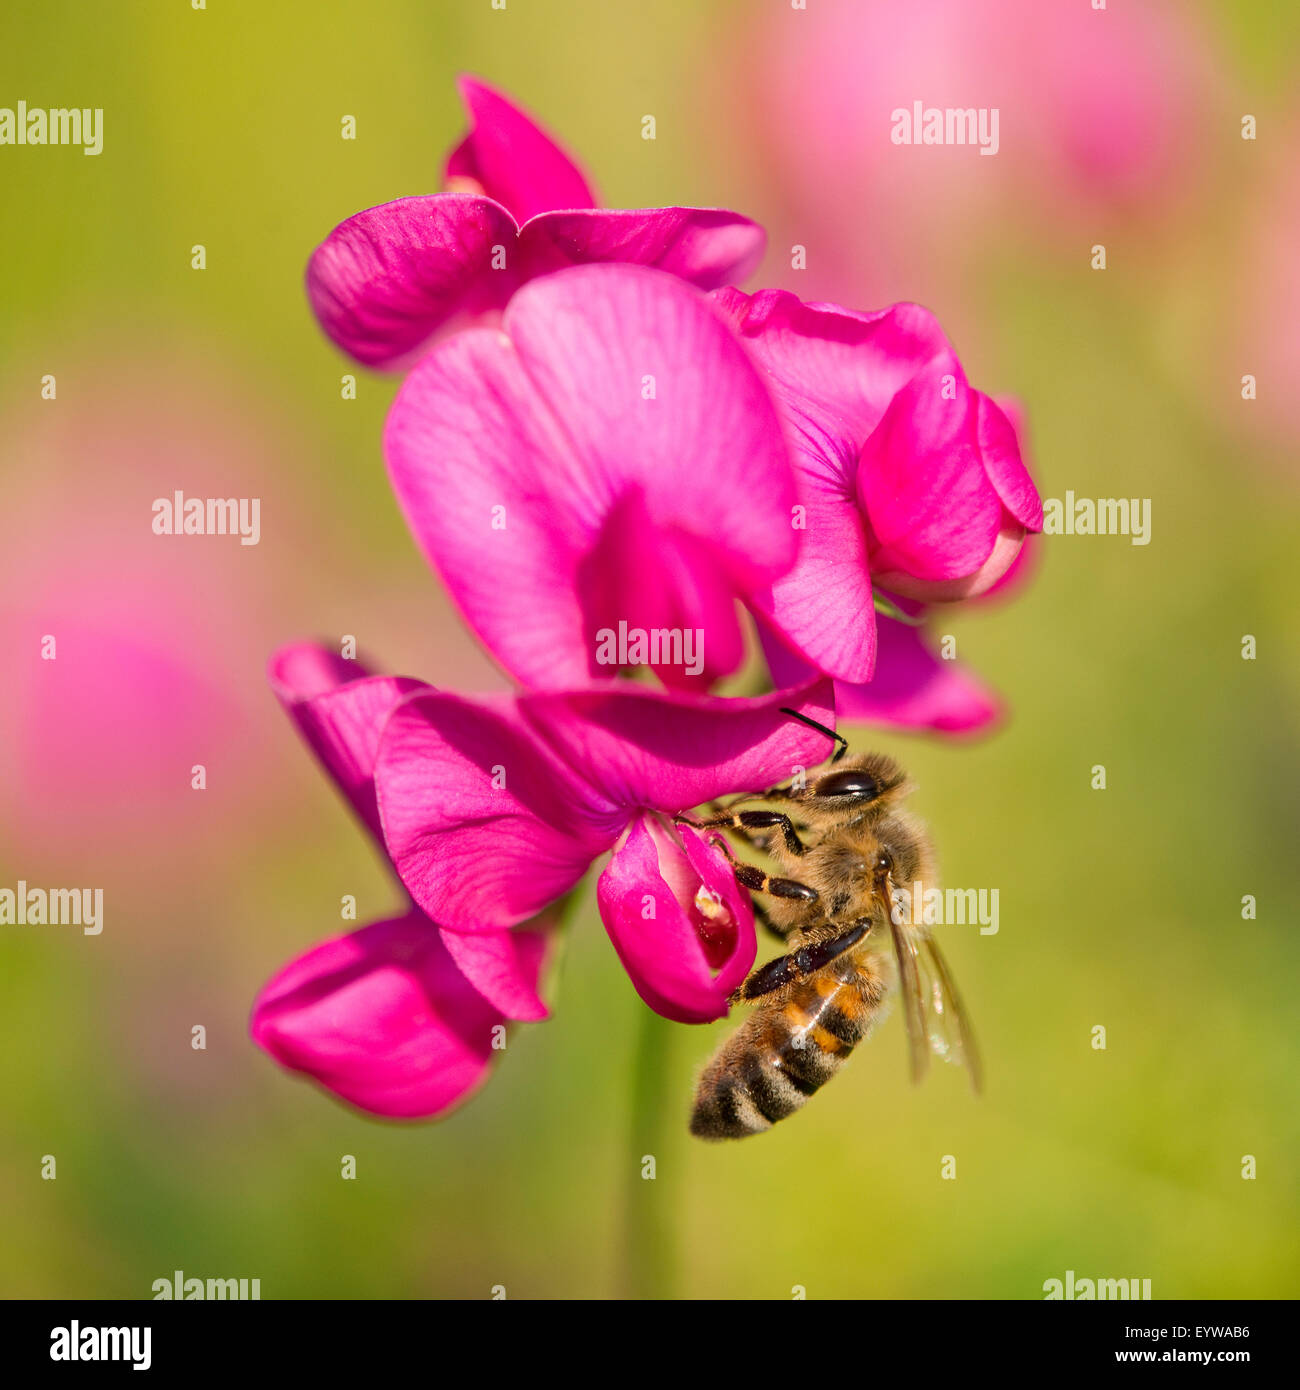 Western Honey Bee (Apis mellifera) on the flower of a Sweet Pea (Lathyrus sp.), Thuringia, Germany - Stock Image